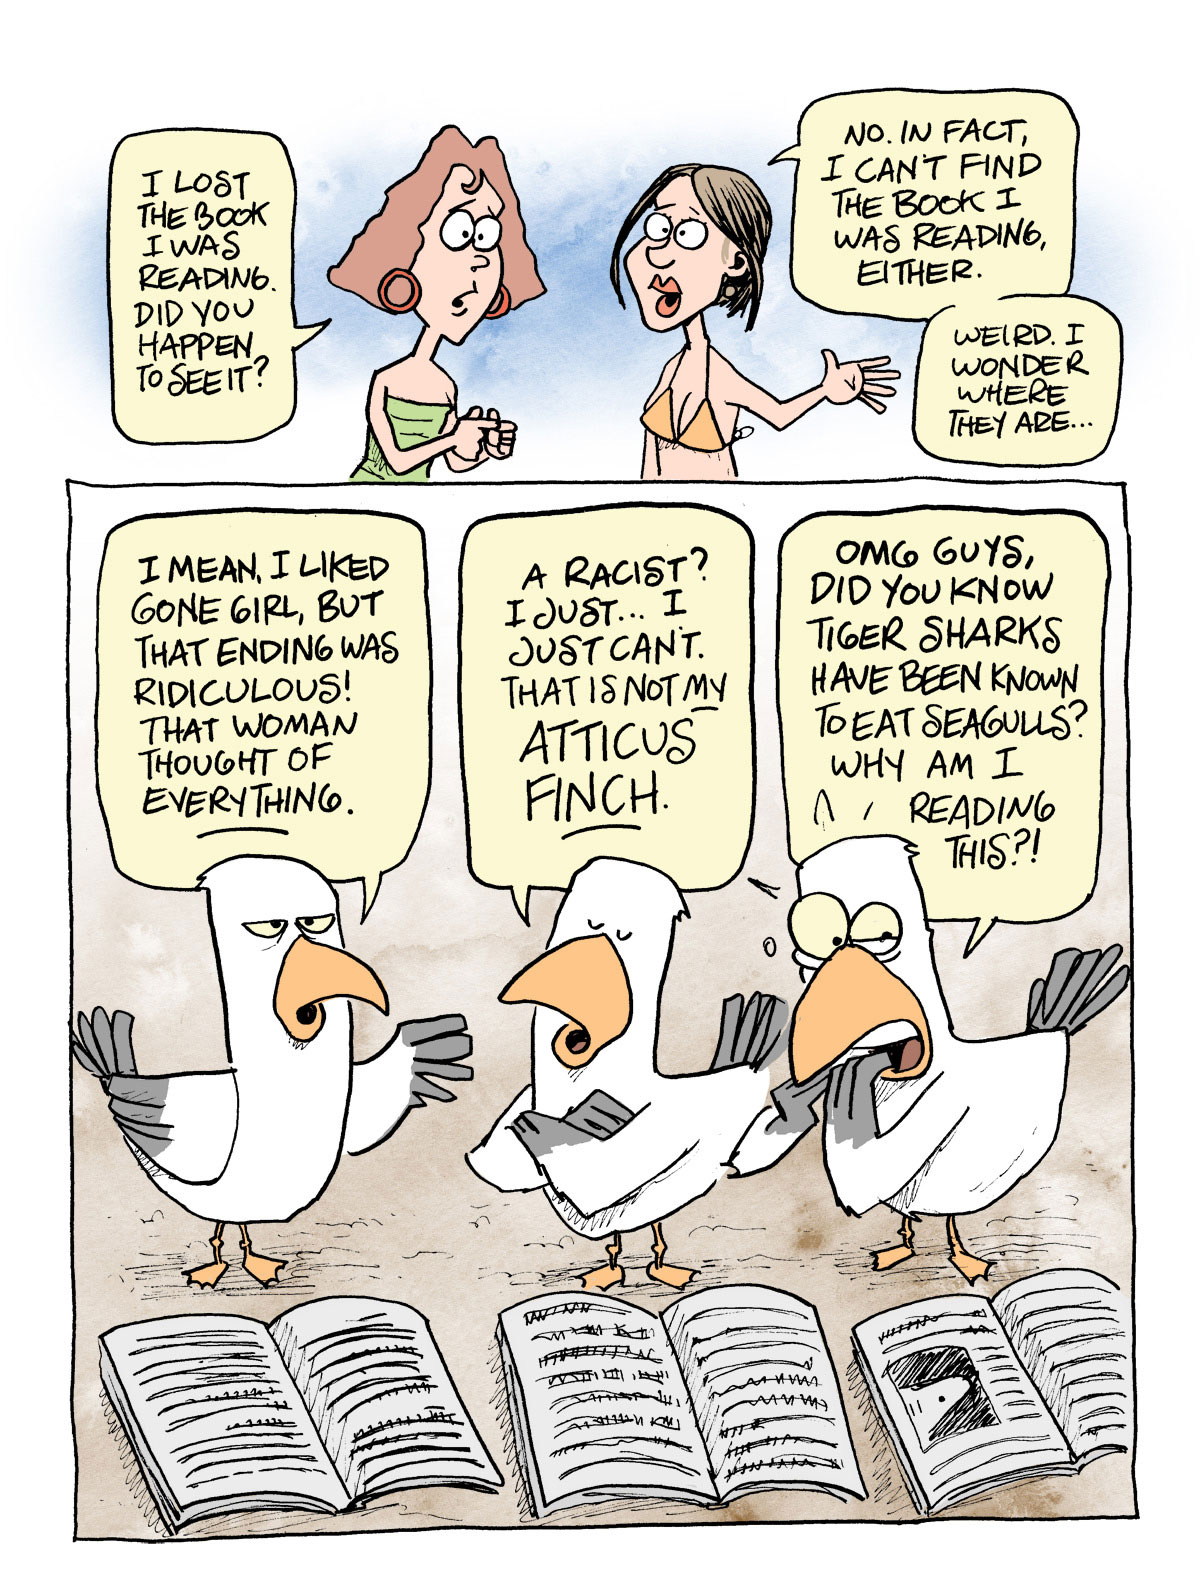 20150730-Seagulls-book-FINAL-for-Web